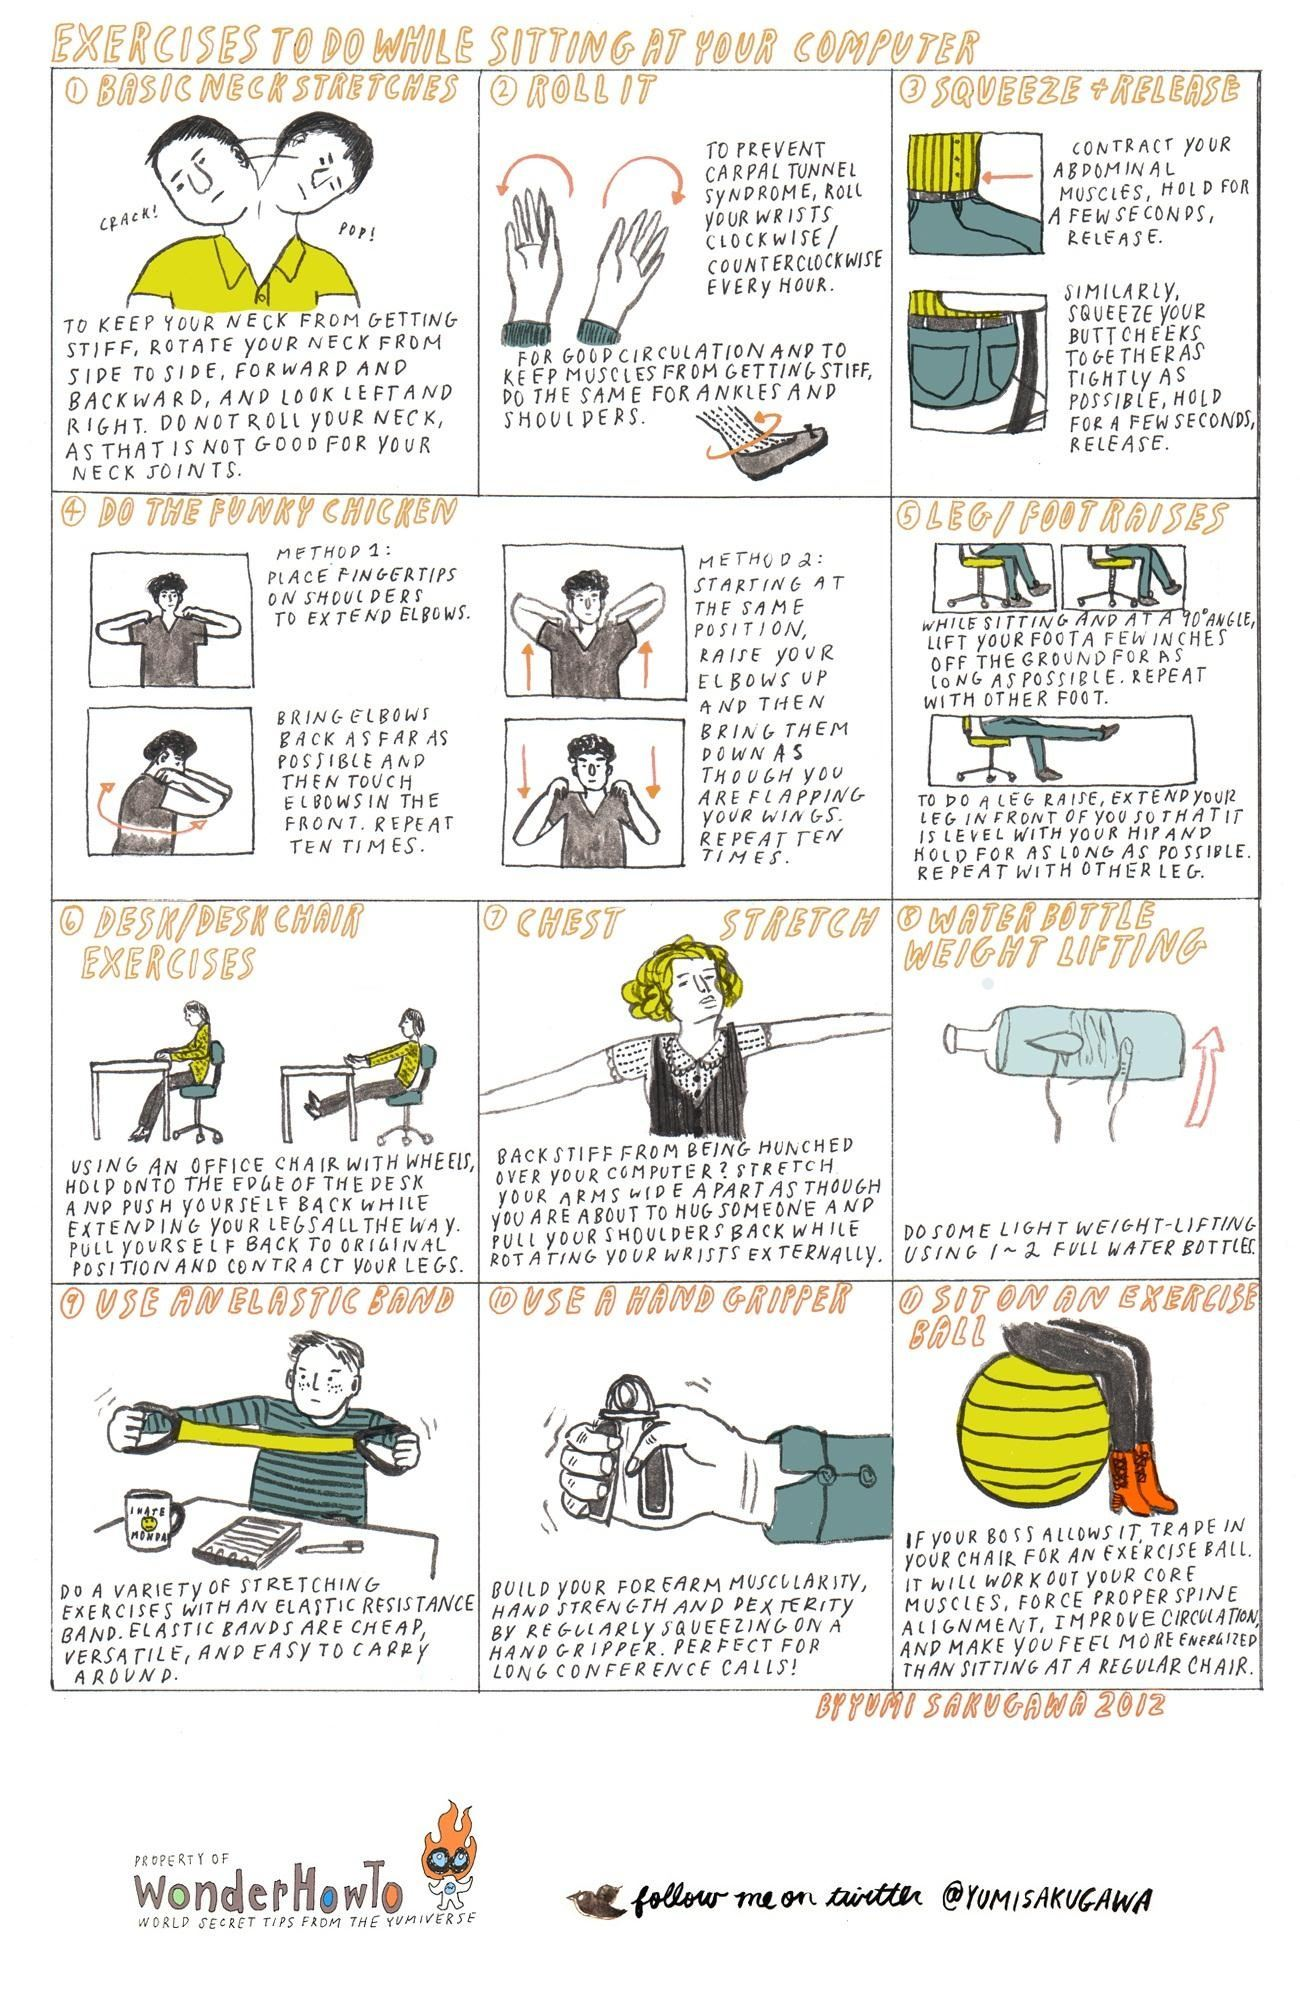 11 Exercises To Do While Sitting At Your Computer 171 The